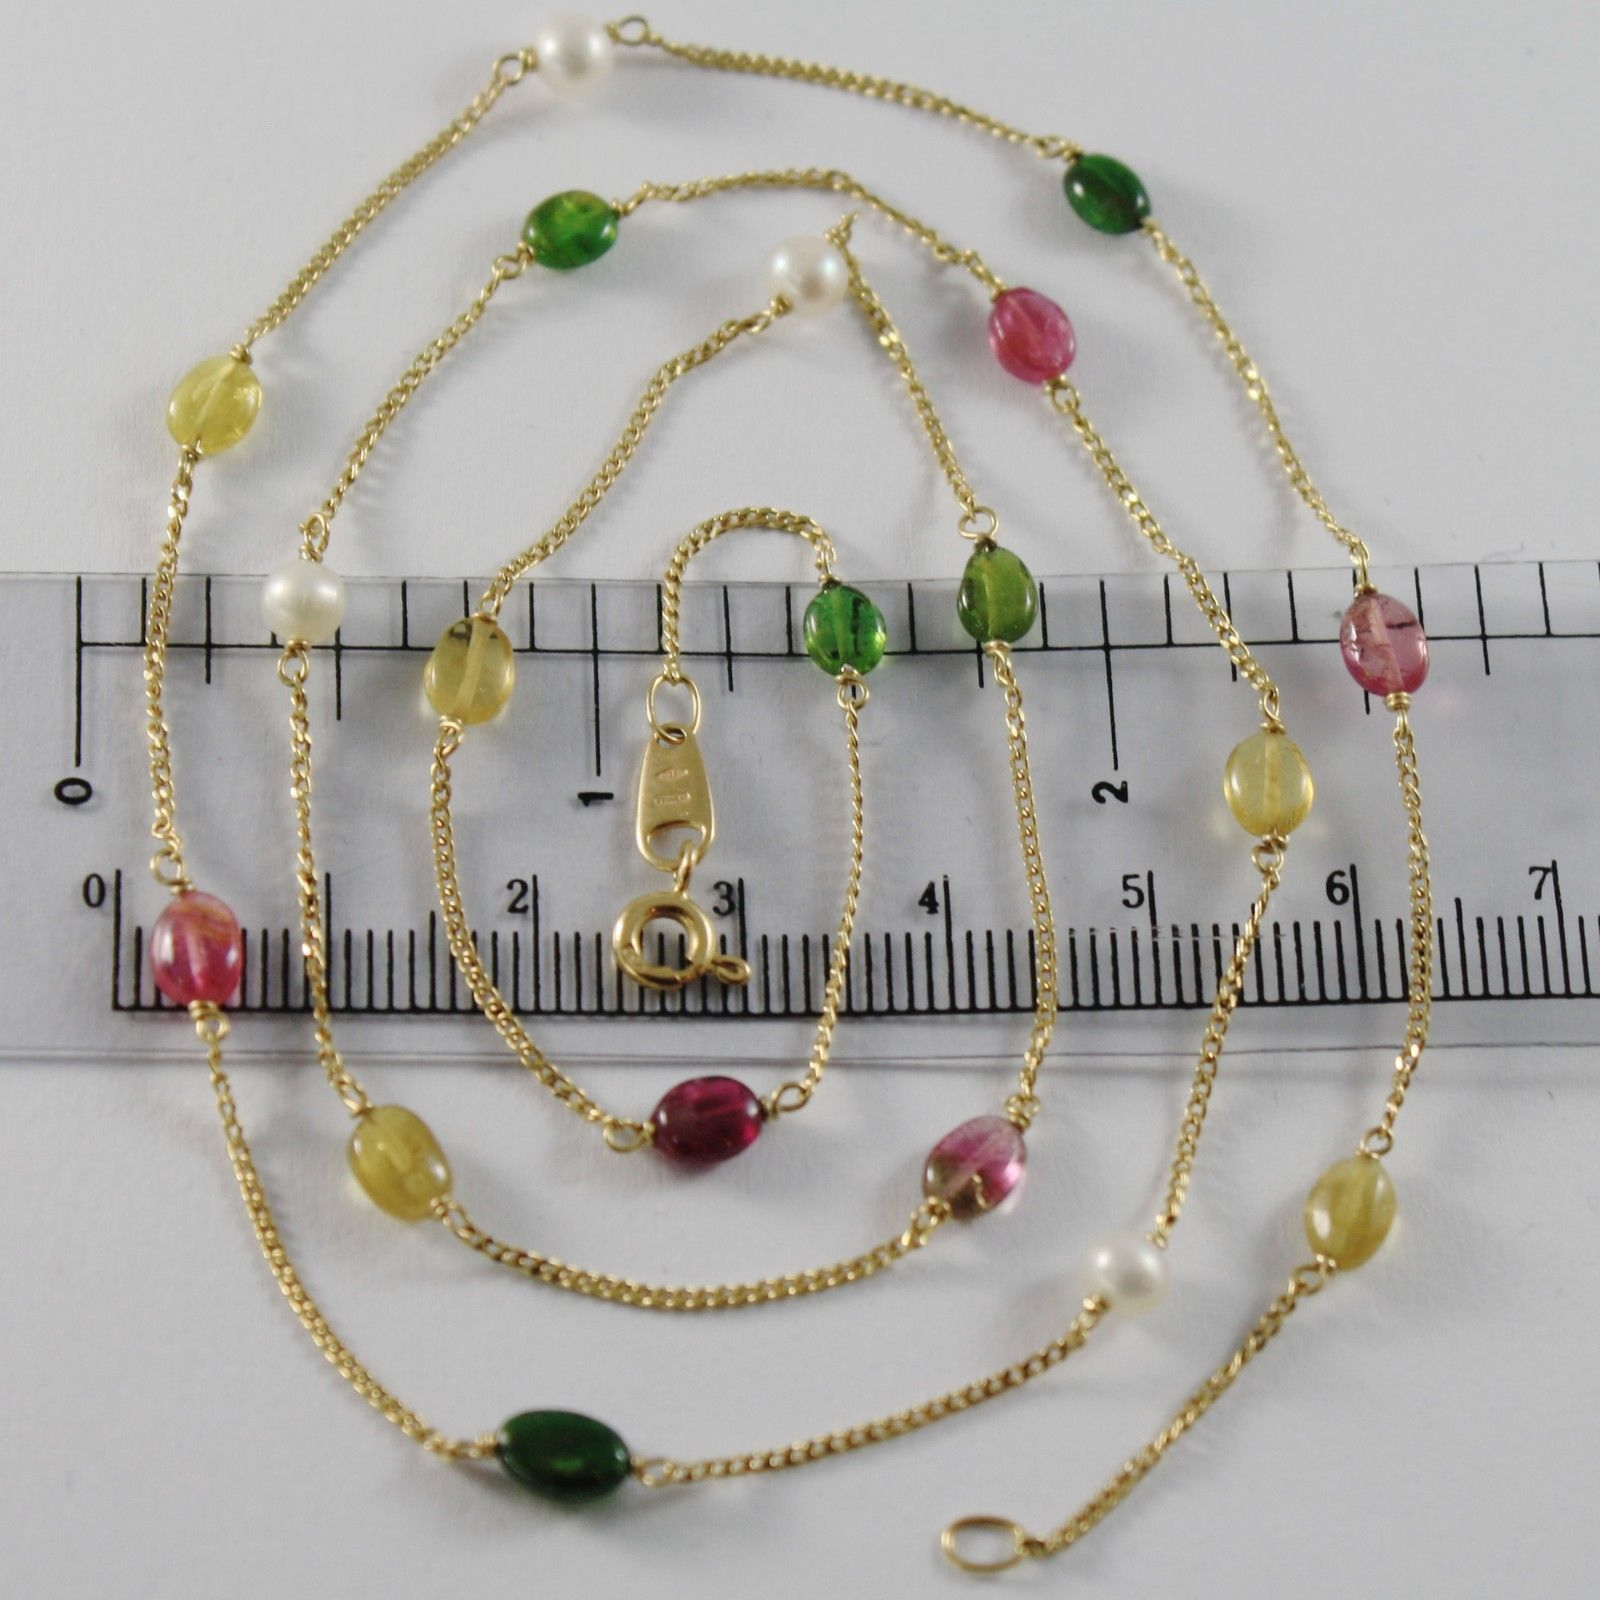 18K YELLOW GOLD MINI GOURMETTE CHAIN NECKLACE WITH OVAL TOURMALINE MADE IN ITALY